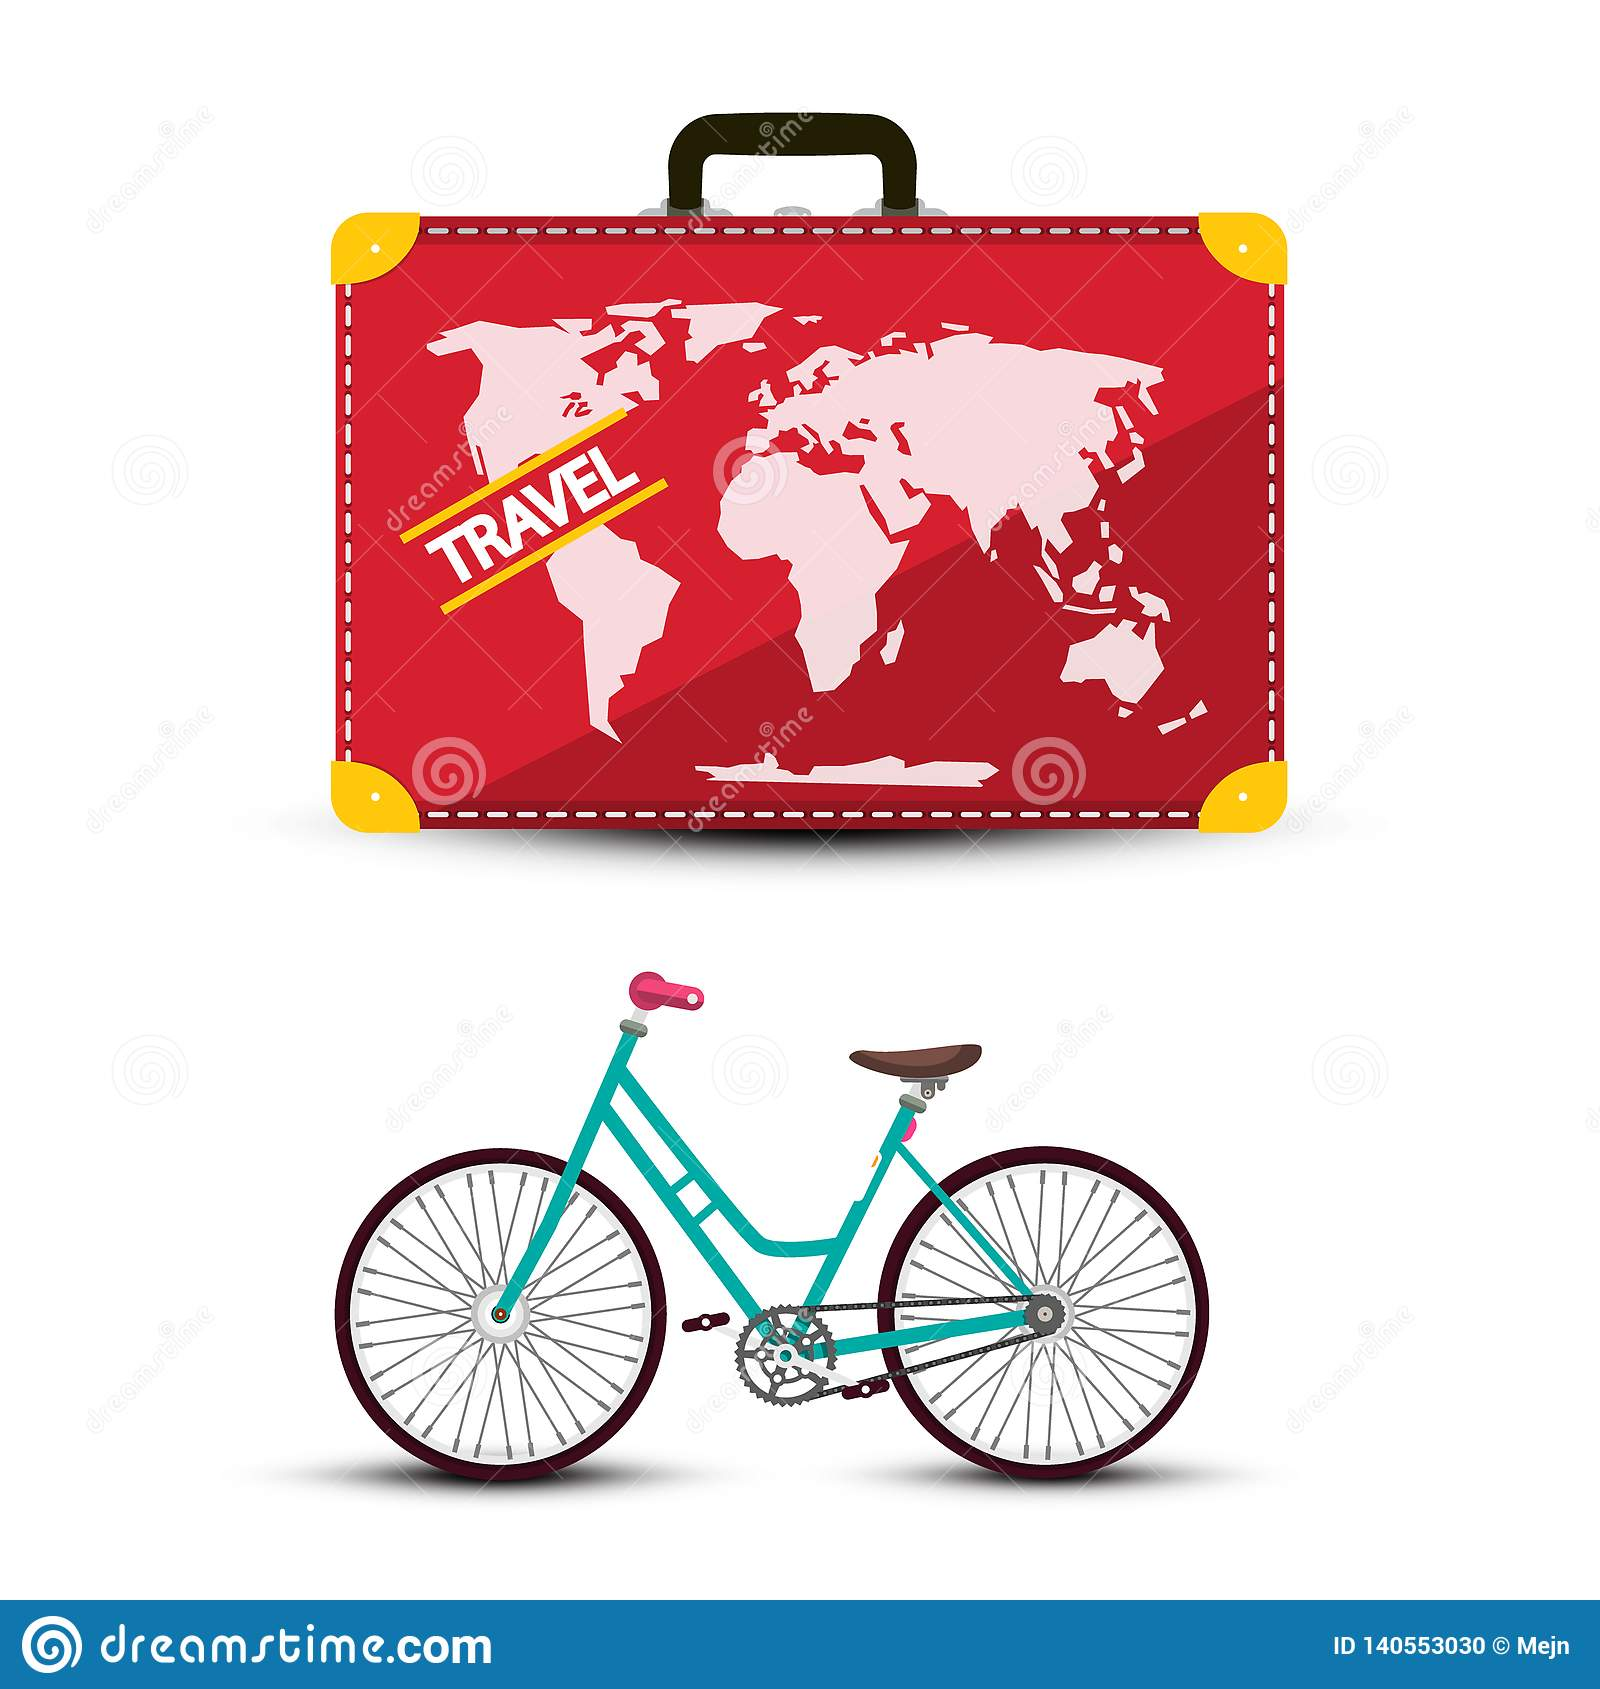 Travel Suitcase with Bicycle Isolated on White Background.